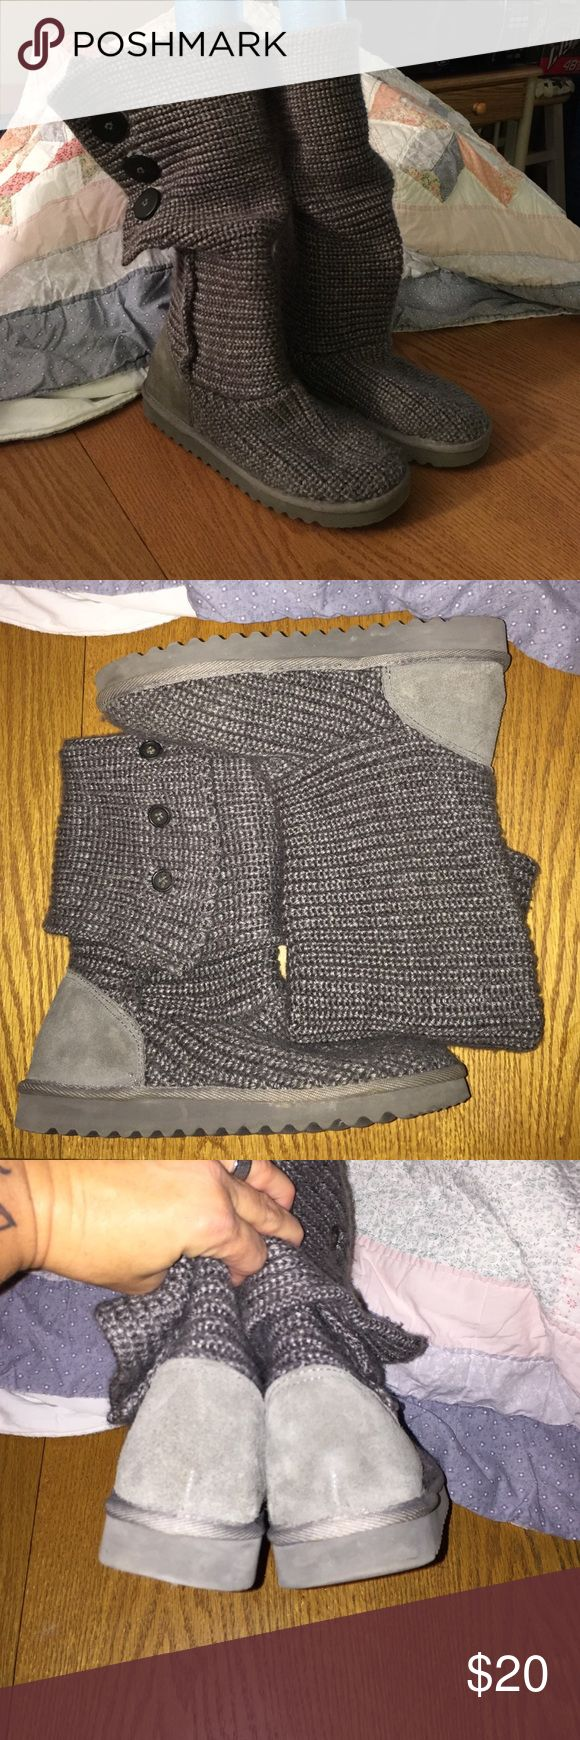 Kirkland Cardi Sweater Boots Sz W8 Kirkland Costco charcoal gray cardigan sweater boots, just in time for fall and ready for you to be cozy in🍂🍂only wore a few times so they're in amazing shape and super cute🎀 can be worn up, folded or a lil slouchy😍 women's size 8🍁 kirkland Shoes